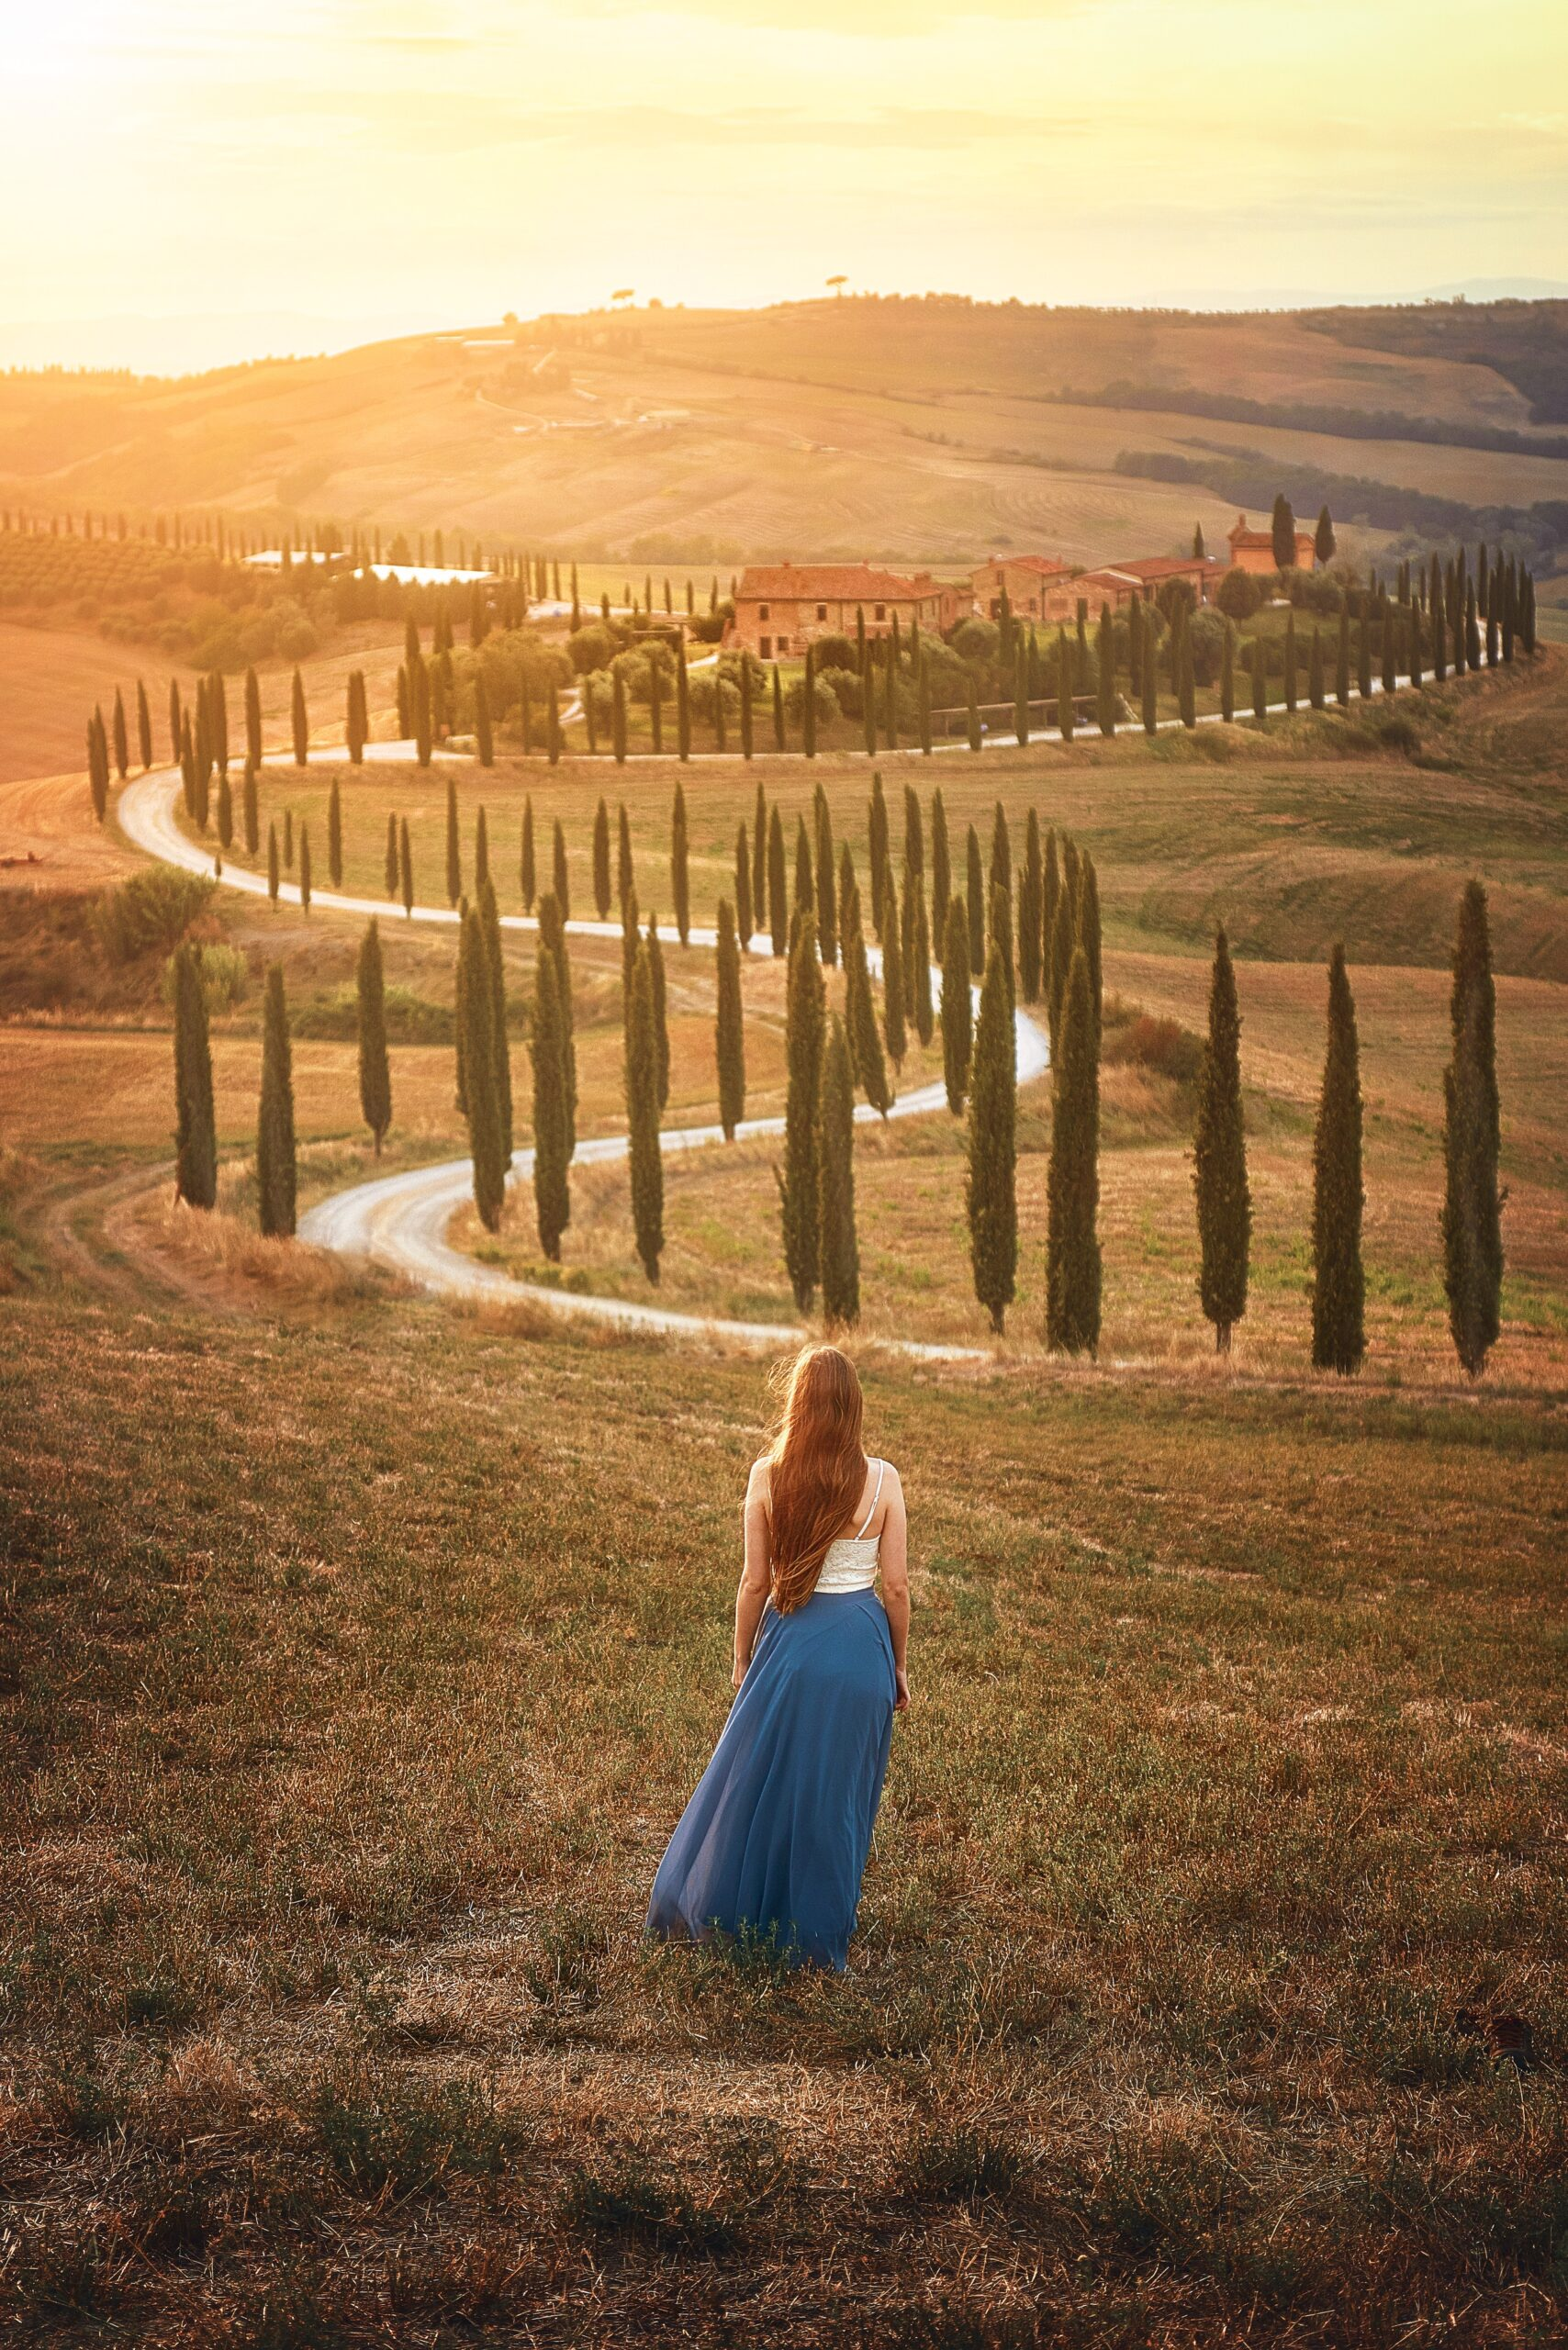 Tree Tunnel in Tuscany at Sunset is one of the best Instagram spots in Tuscany Italy | prettiest views in Tuscany | pretty instagram spots in Tuscany Italy | Tuscany travel tips | Victoria Yore of Follow Me Away standing in the Tuscany Countryside near a remote road and tree lined path. One of the best Tuscany photography locations